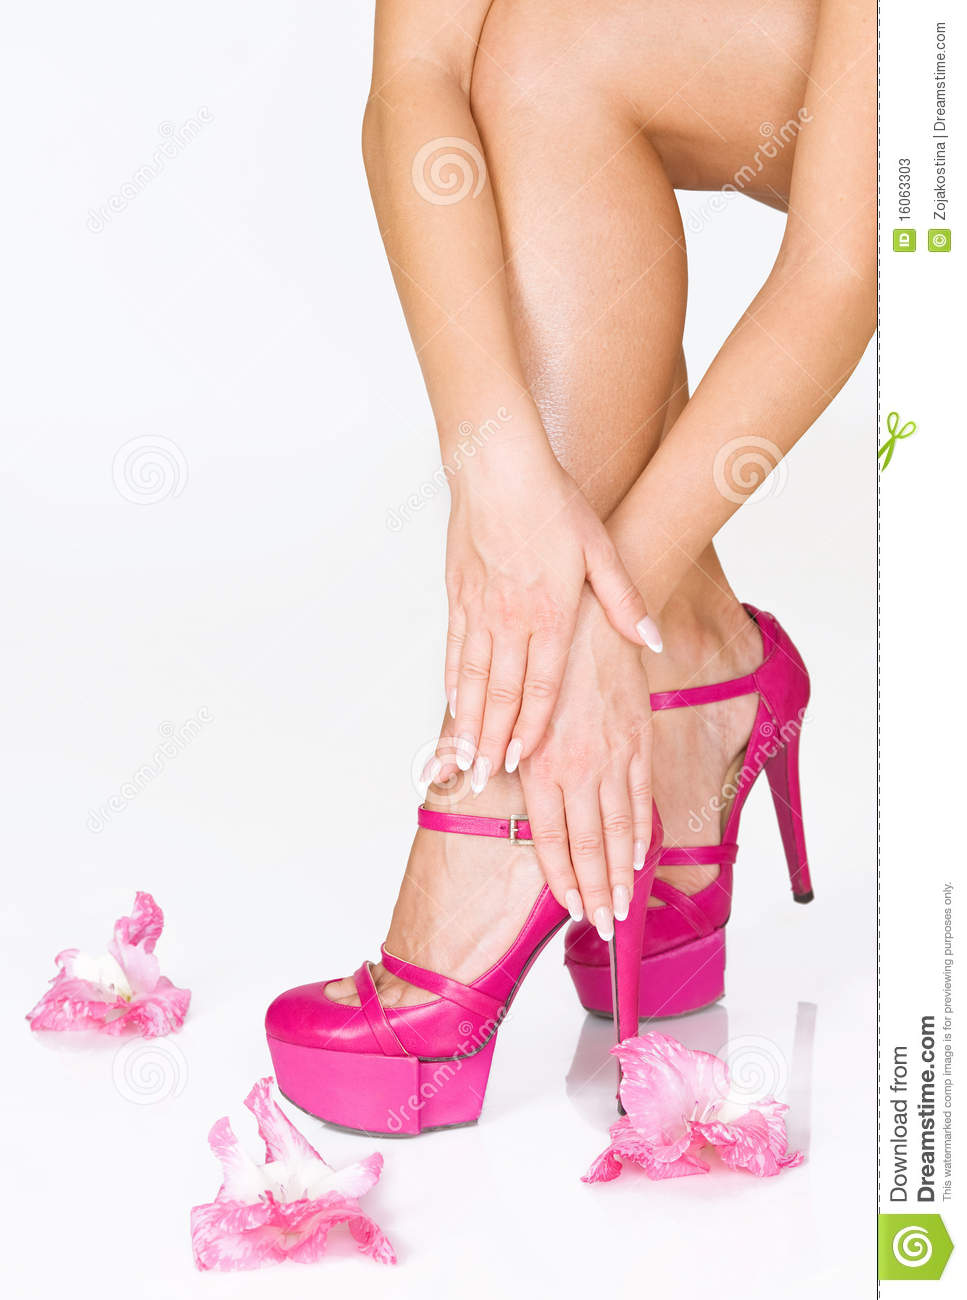 French Manicure High Heels And Pink Flowers Stock Image Image Of